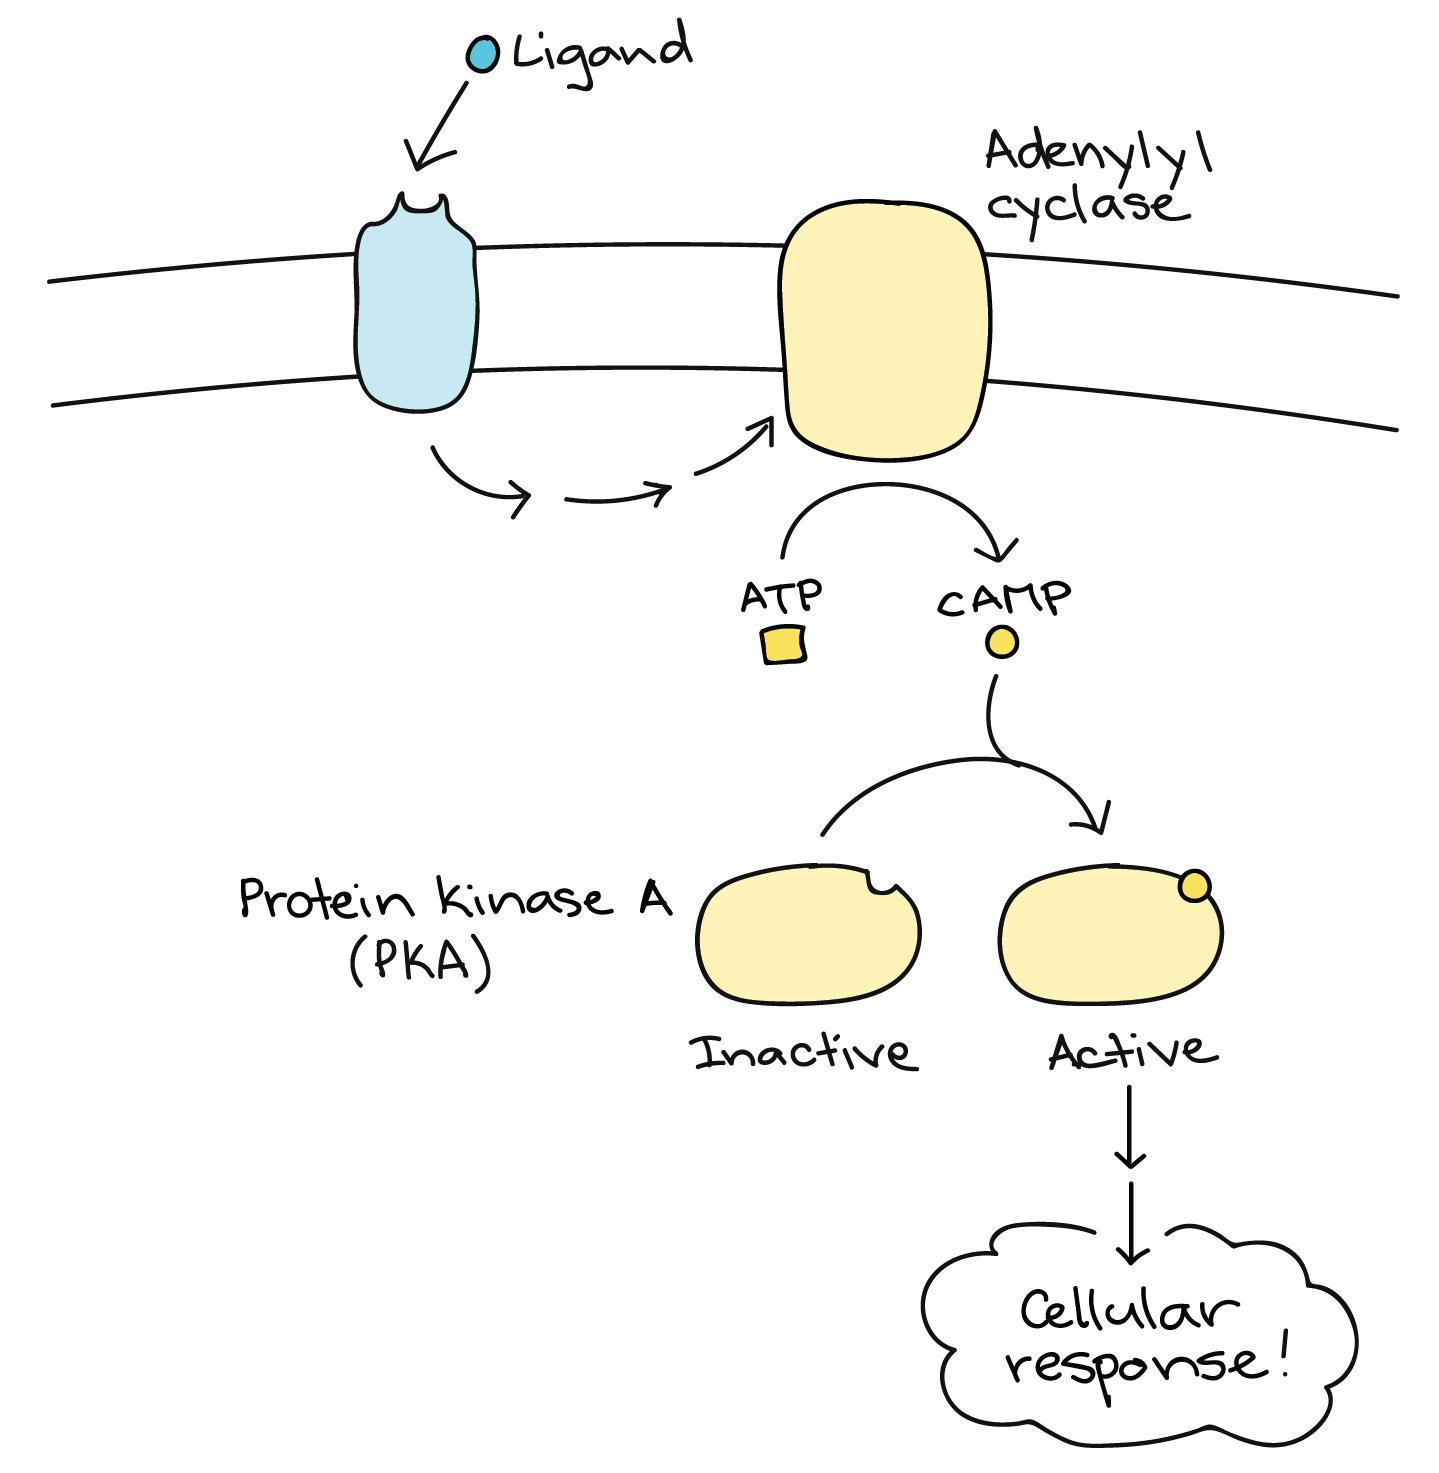 Signal relay pathways cell signaling article khan academy diagram of a pathway that uses camp as a second messenger a ligand binds to a receptor leading indirectly to activation of adenylyl cyclase pooptronica